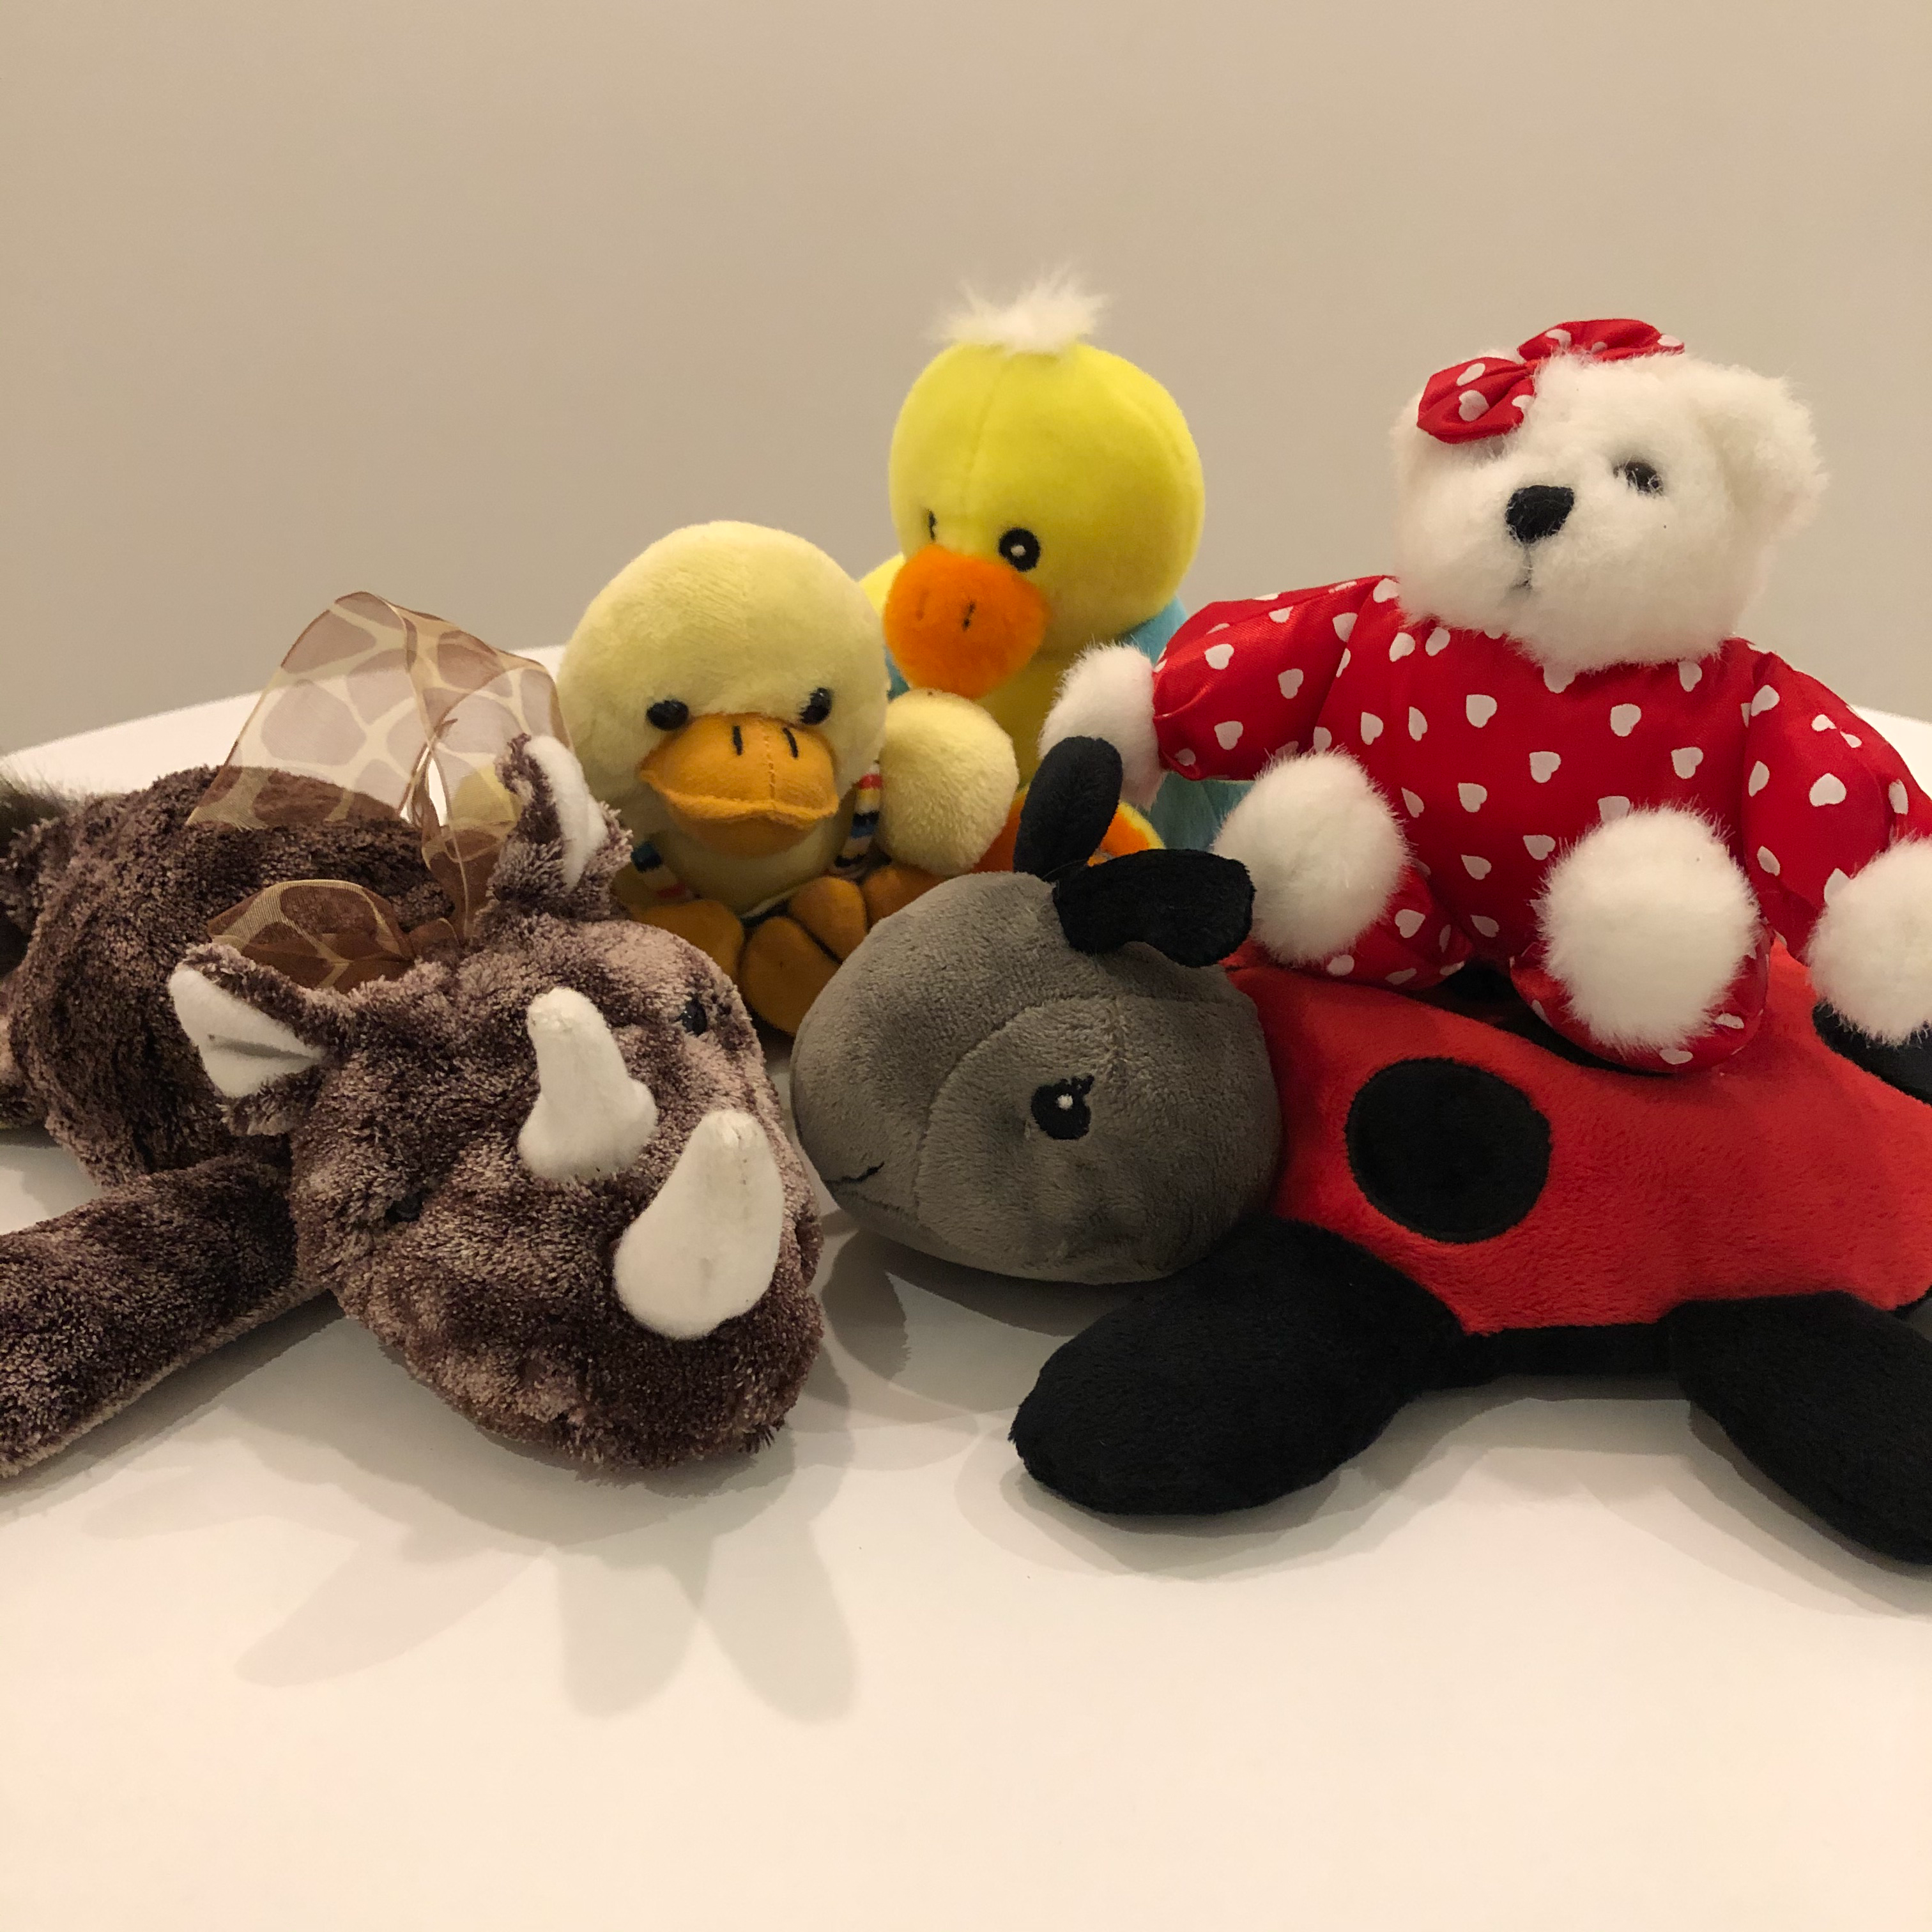 Ensemble de divers peluches